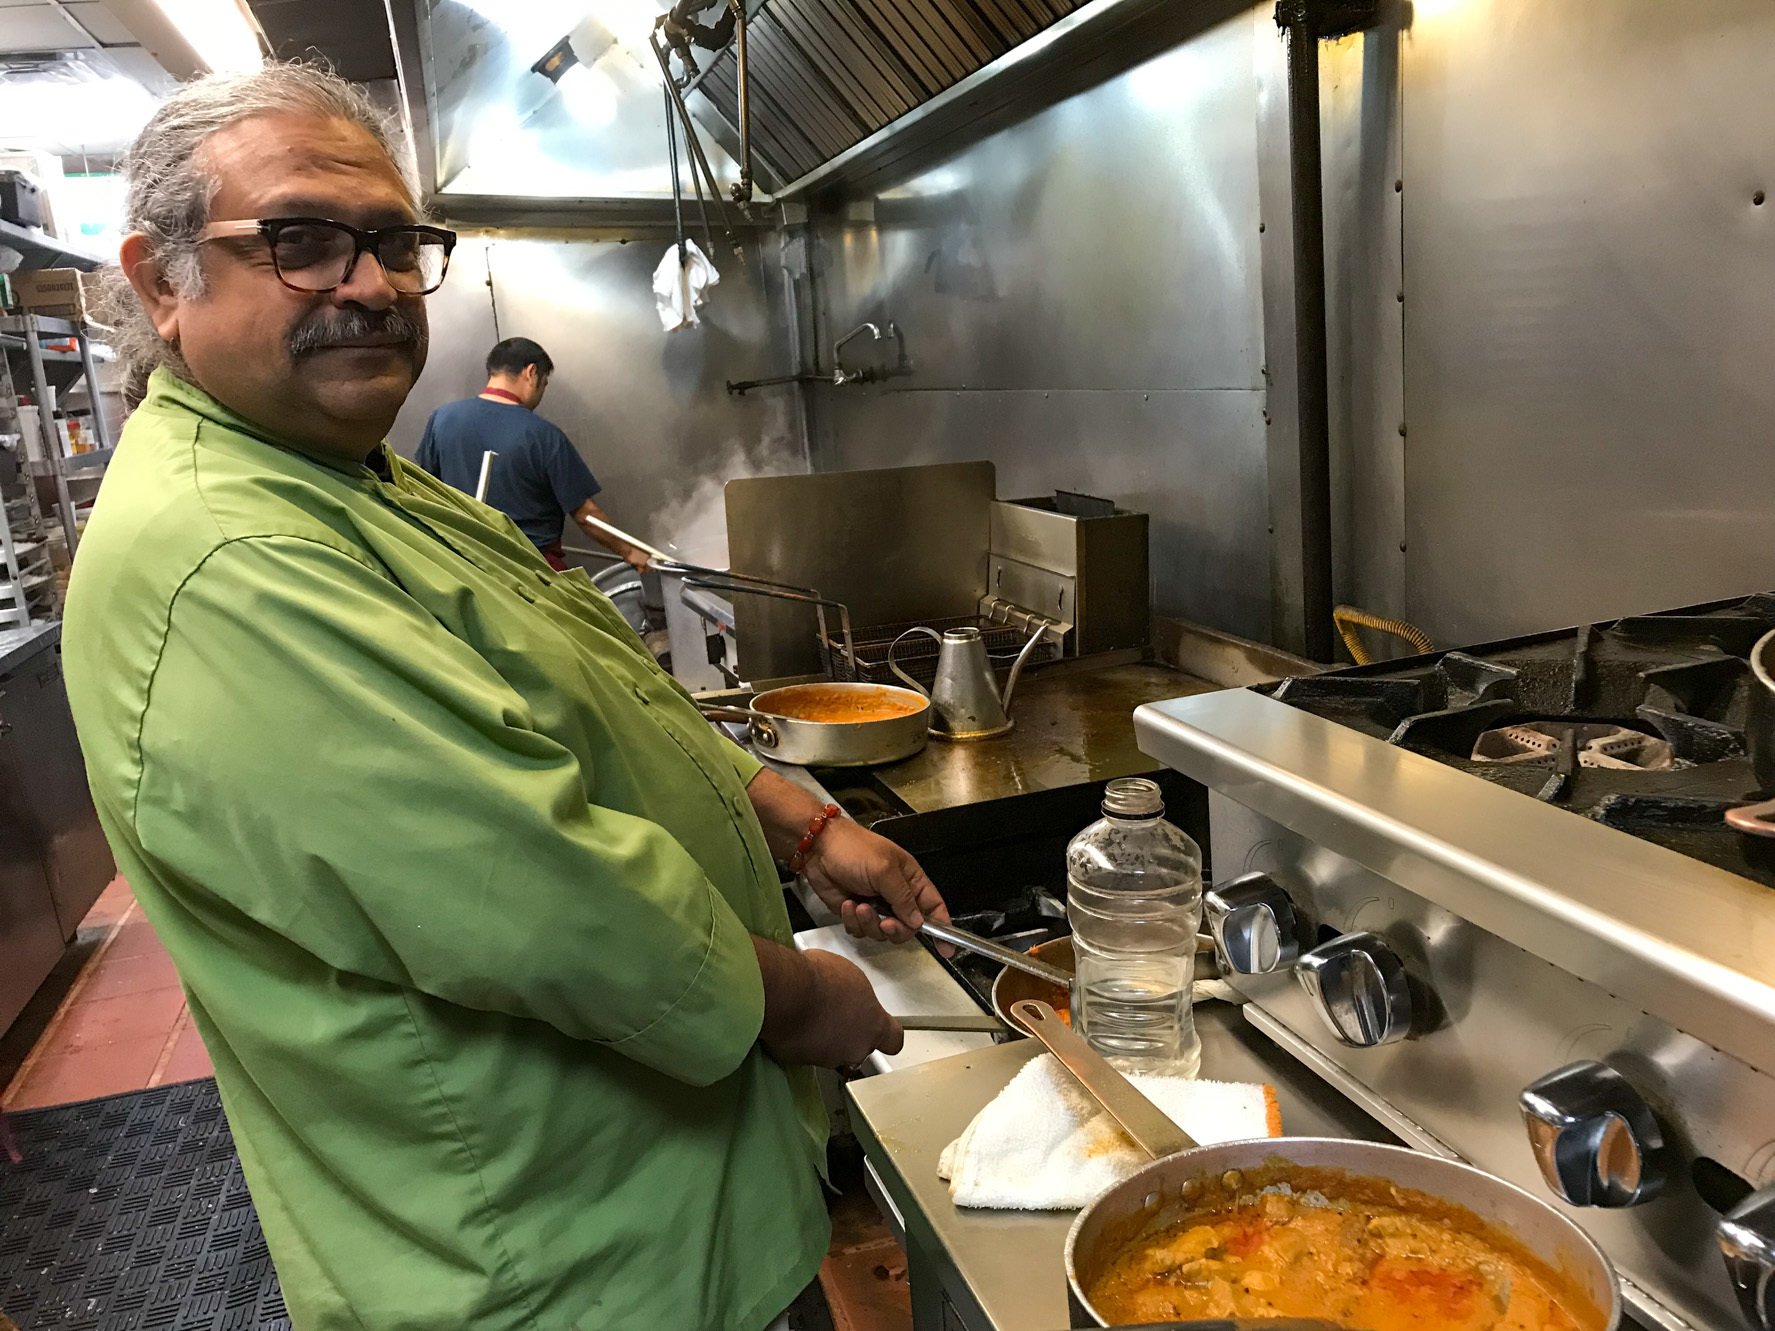 Lashkari gives us a tour of his kitchen. He's known for some of the best Pakistani and Indian food in Houston. His cooking borrows happily from other cultures.